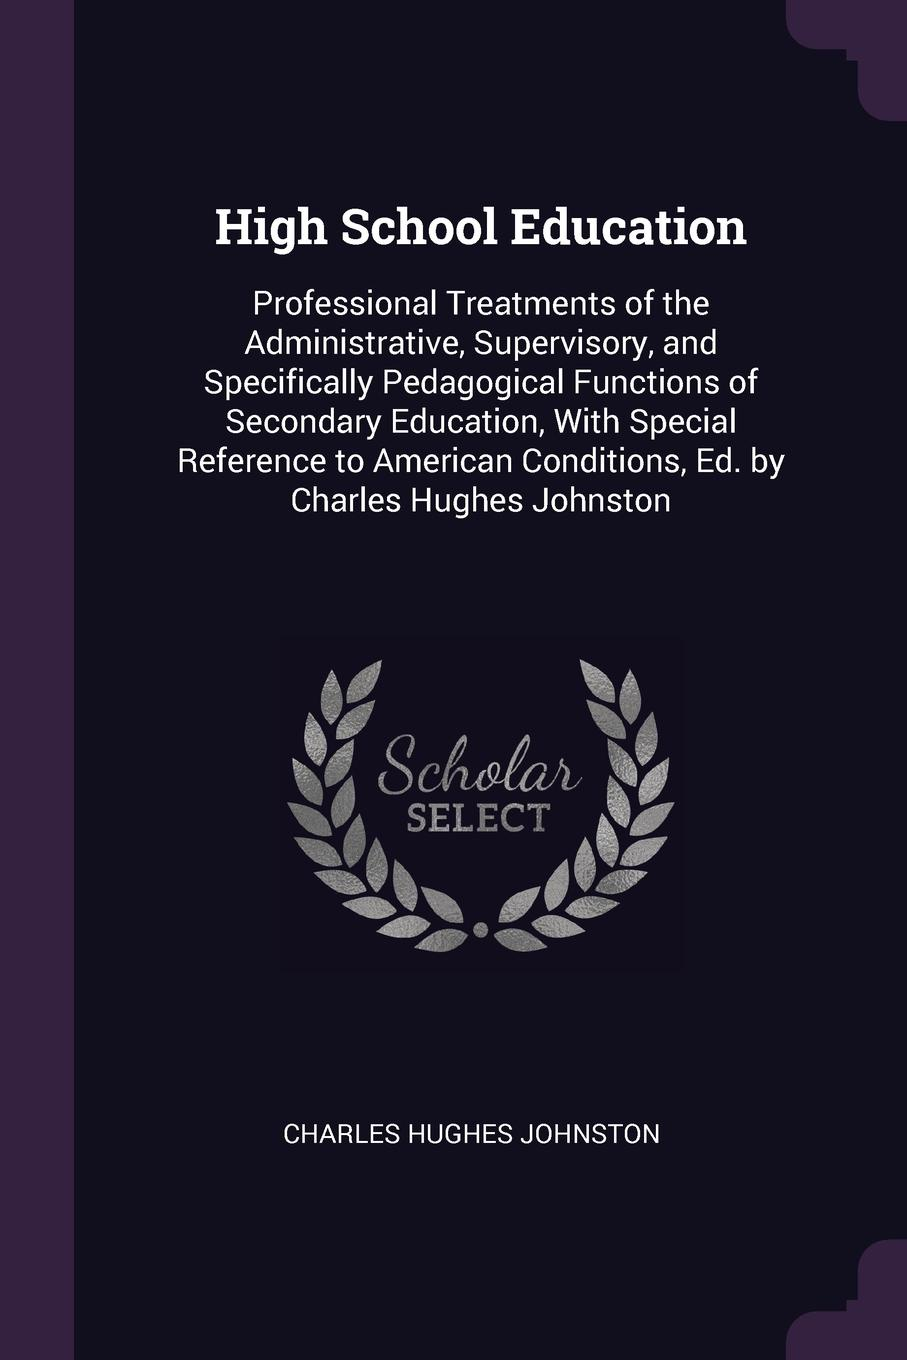 High-School-Education-Professional-Treatments-of-the-Administrative-Supervisory-and-Specifically-Pedagogical-Functions-of-Secondary-Education-With-Spe